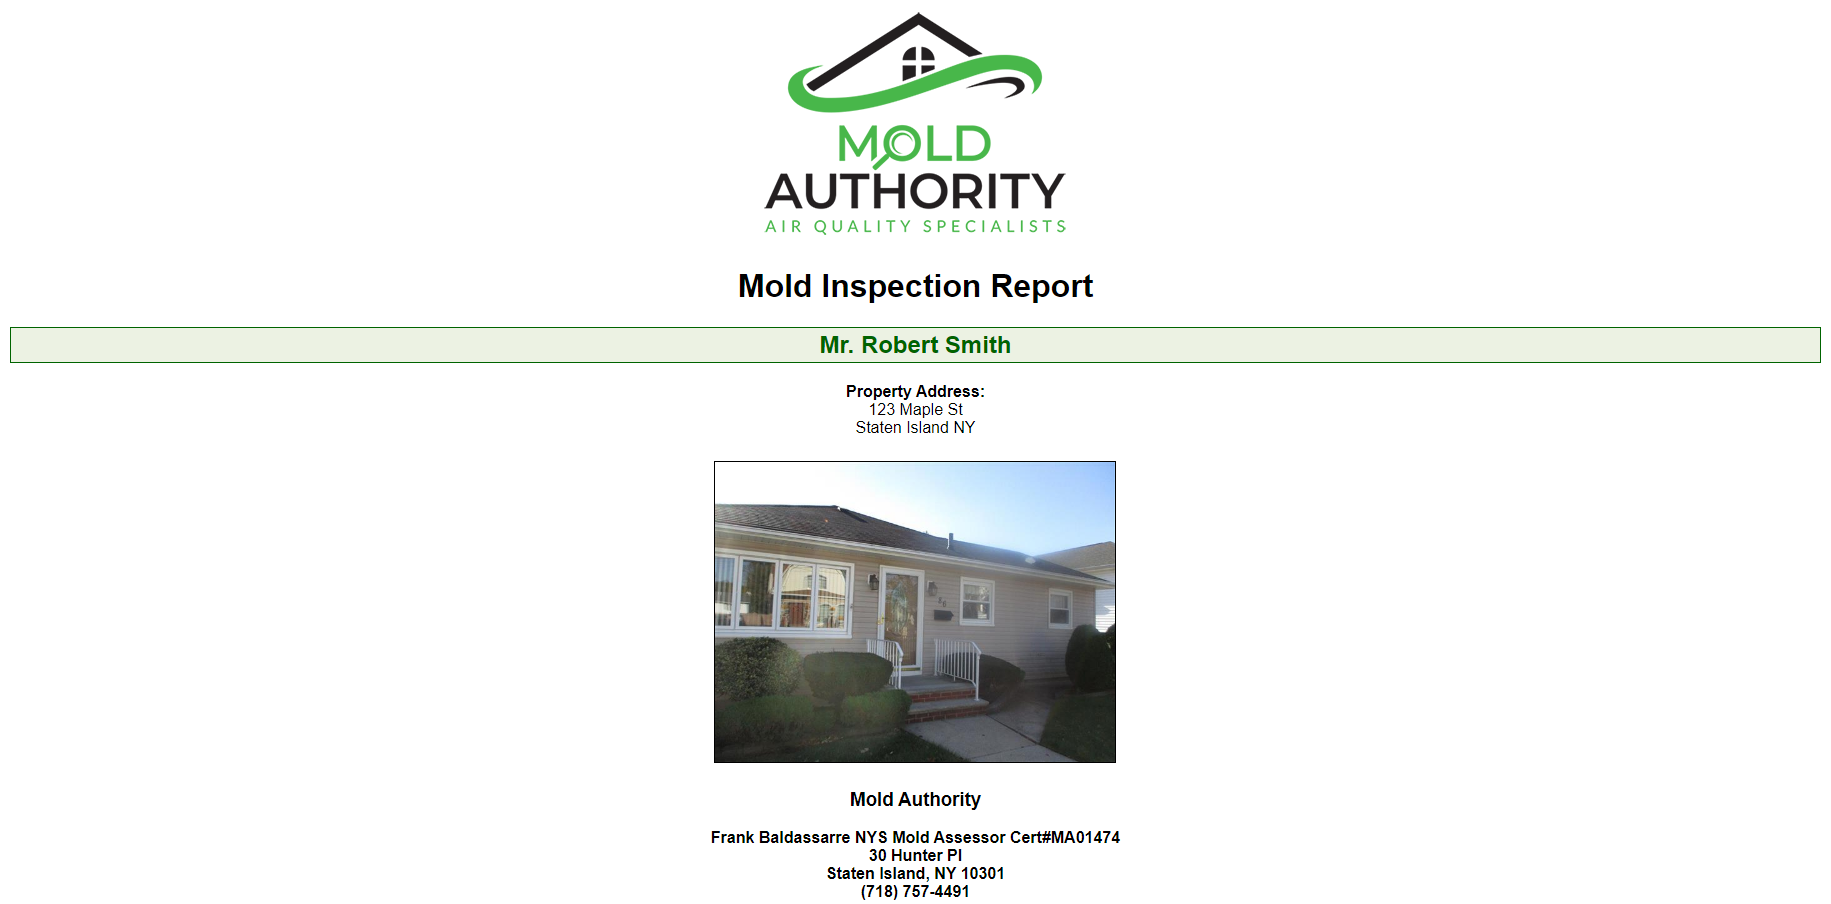 Single-Family Home Mold Inspection Report Sample